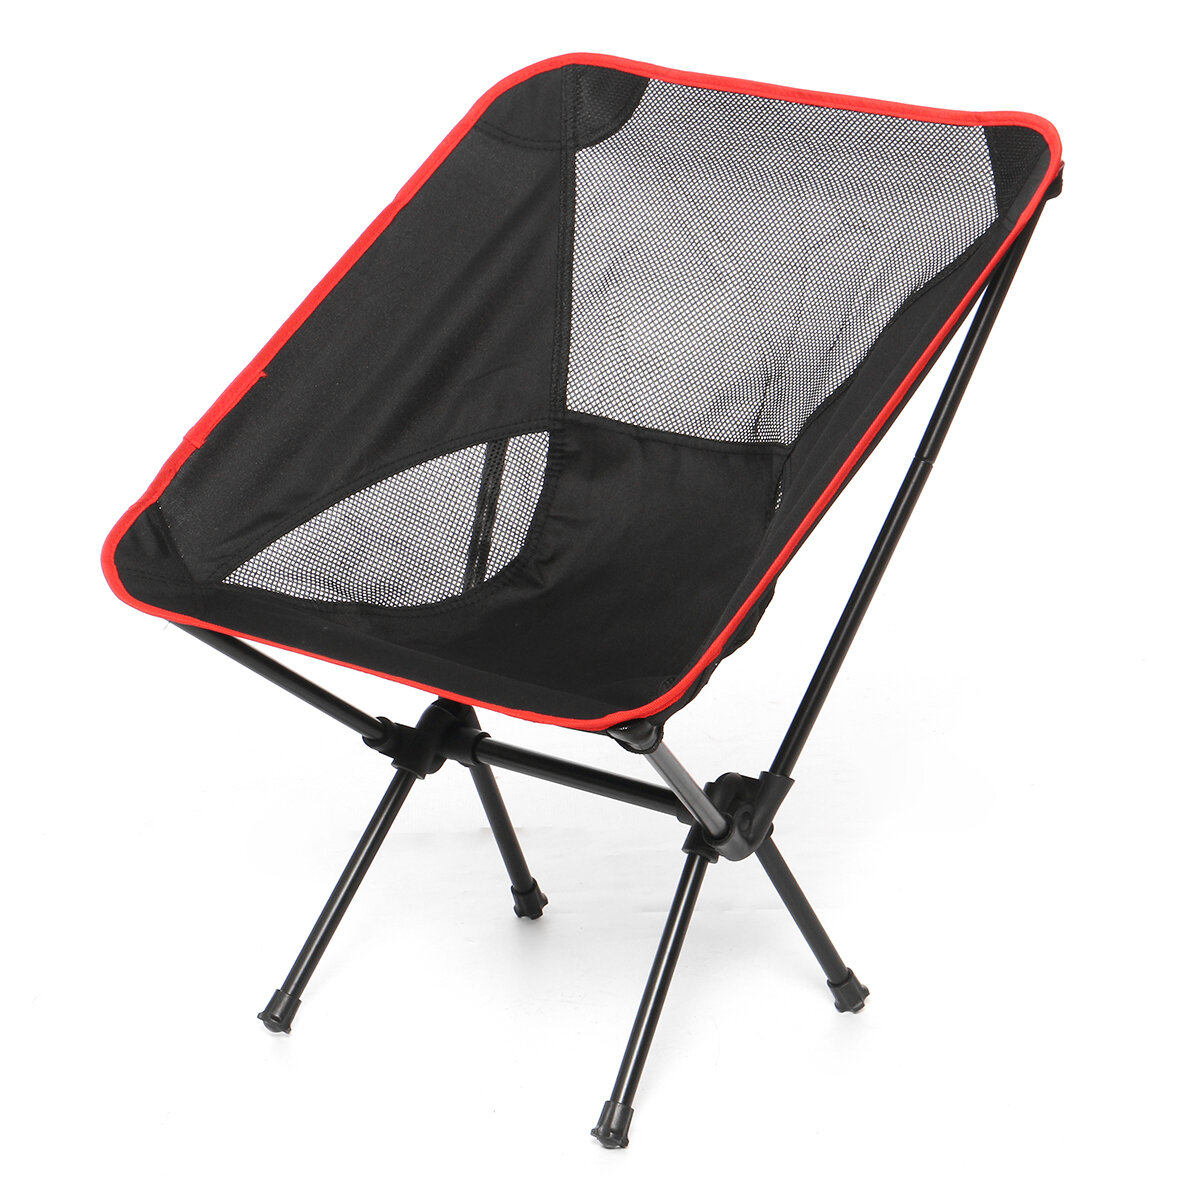 ZANLURE Portable Folding Fishing Chair Outdoor Foldable Camping Chair Collapsible Beach Chair фото